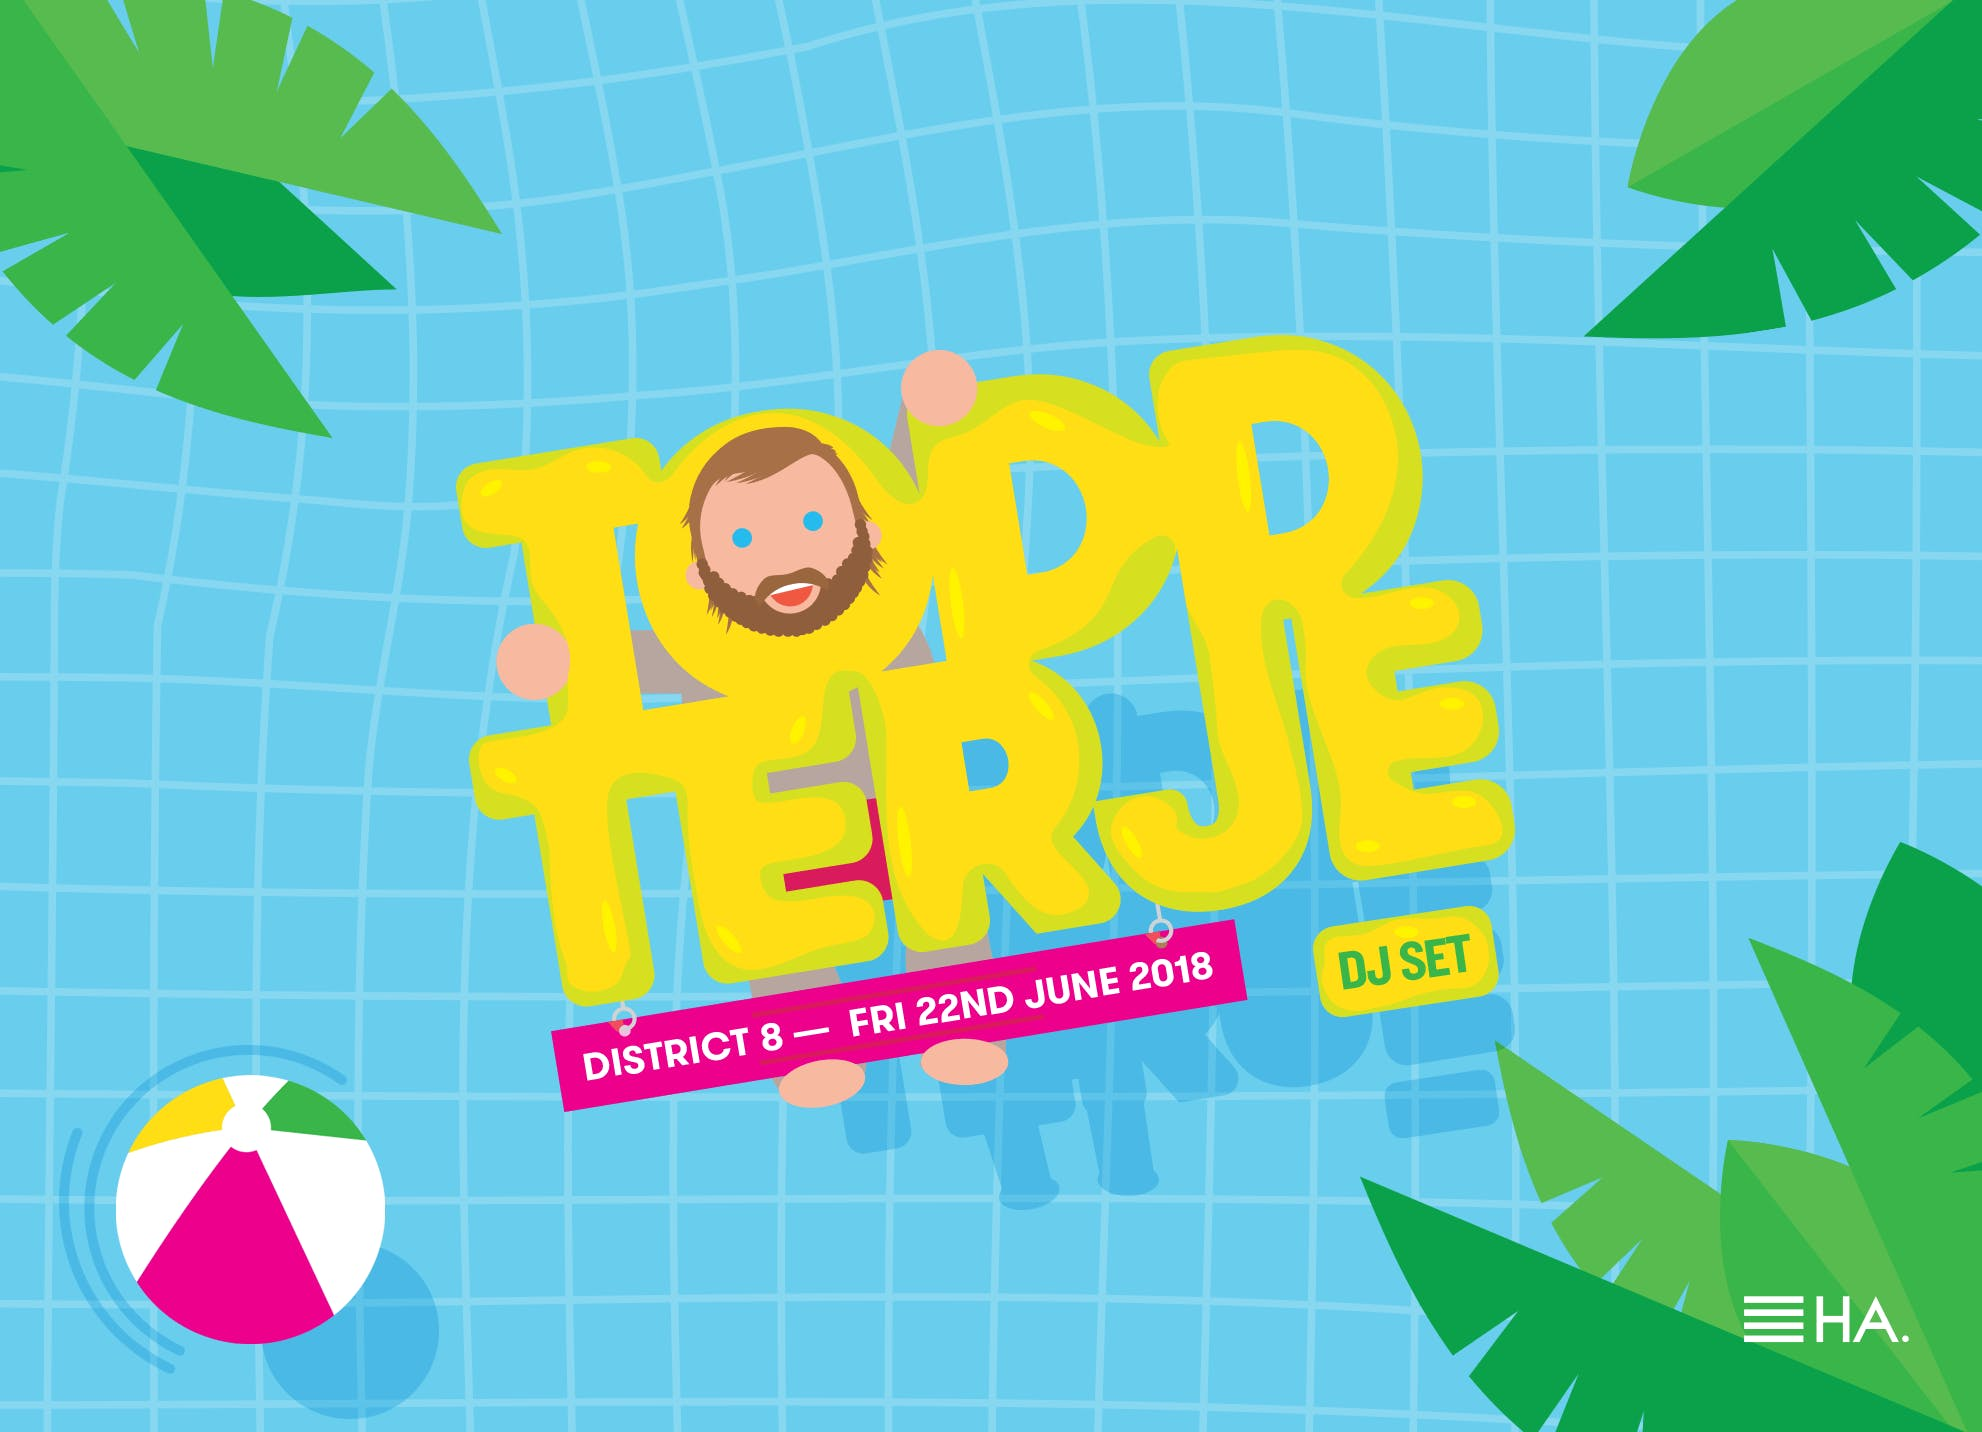 Todd Terje (DJ Set) at District 8